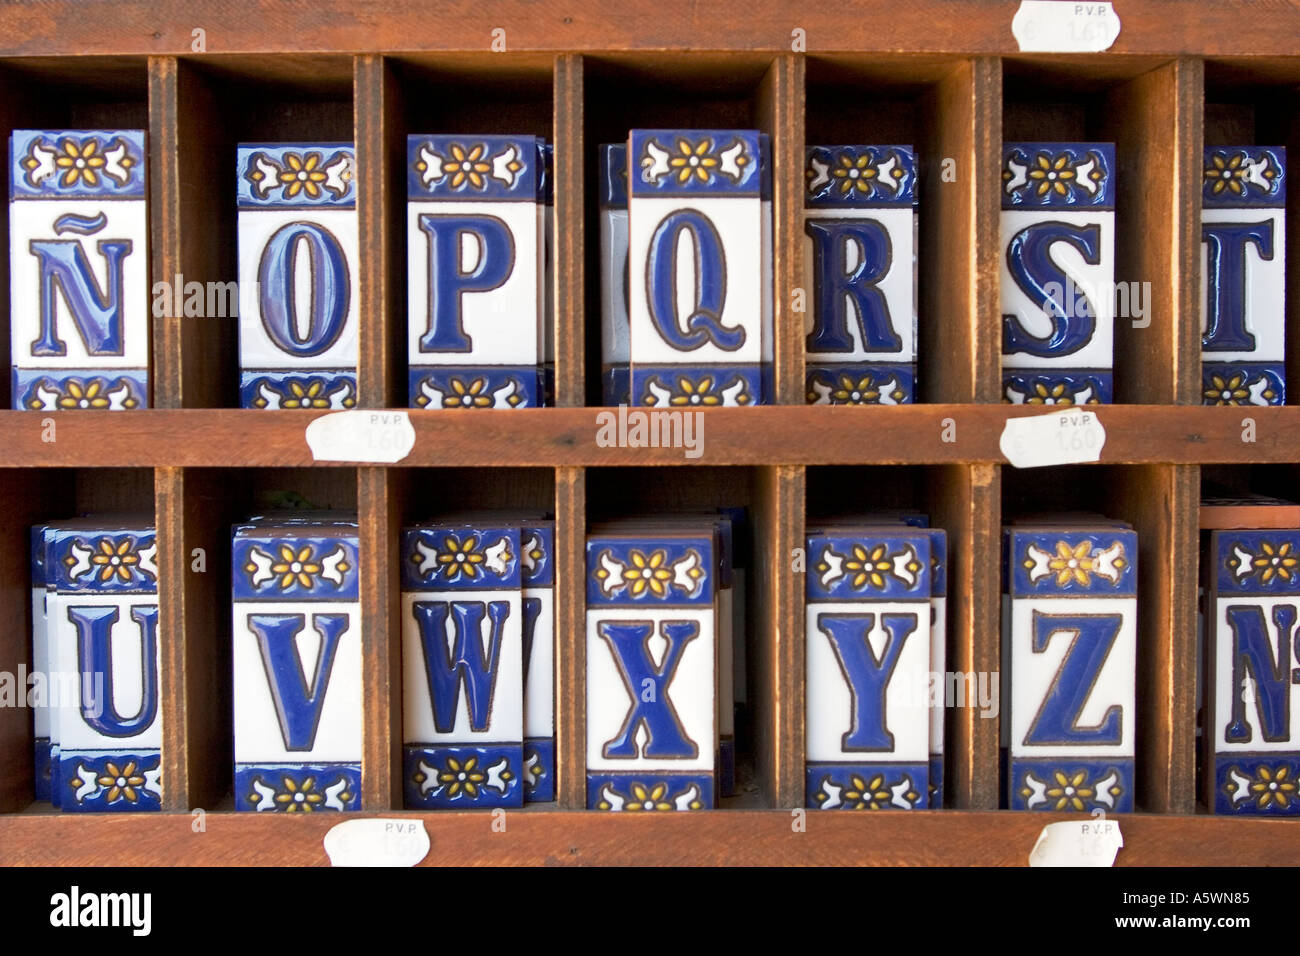 Ceramic tiles with letters Stock Photo: 3719556 - Alamy